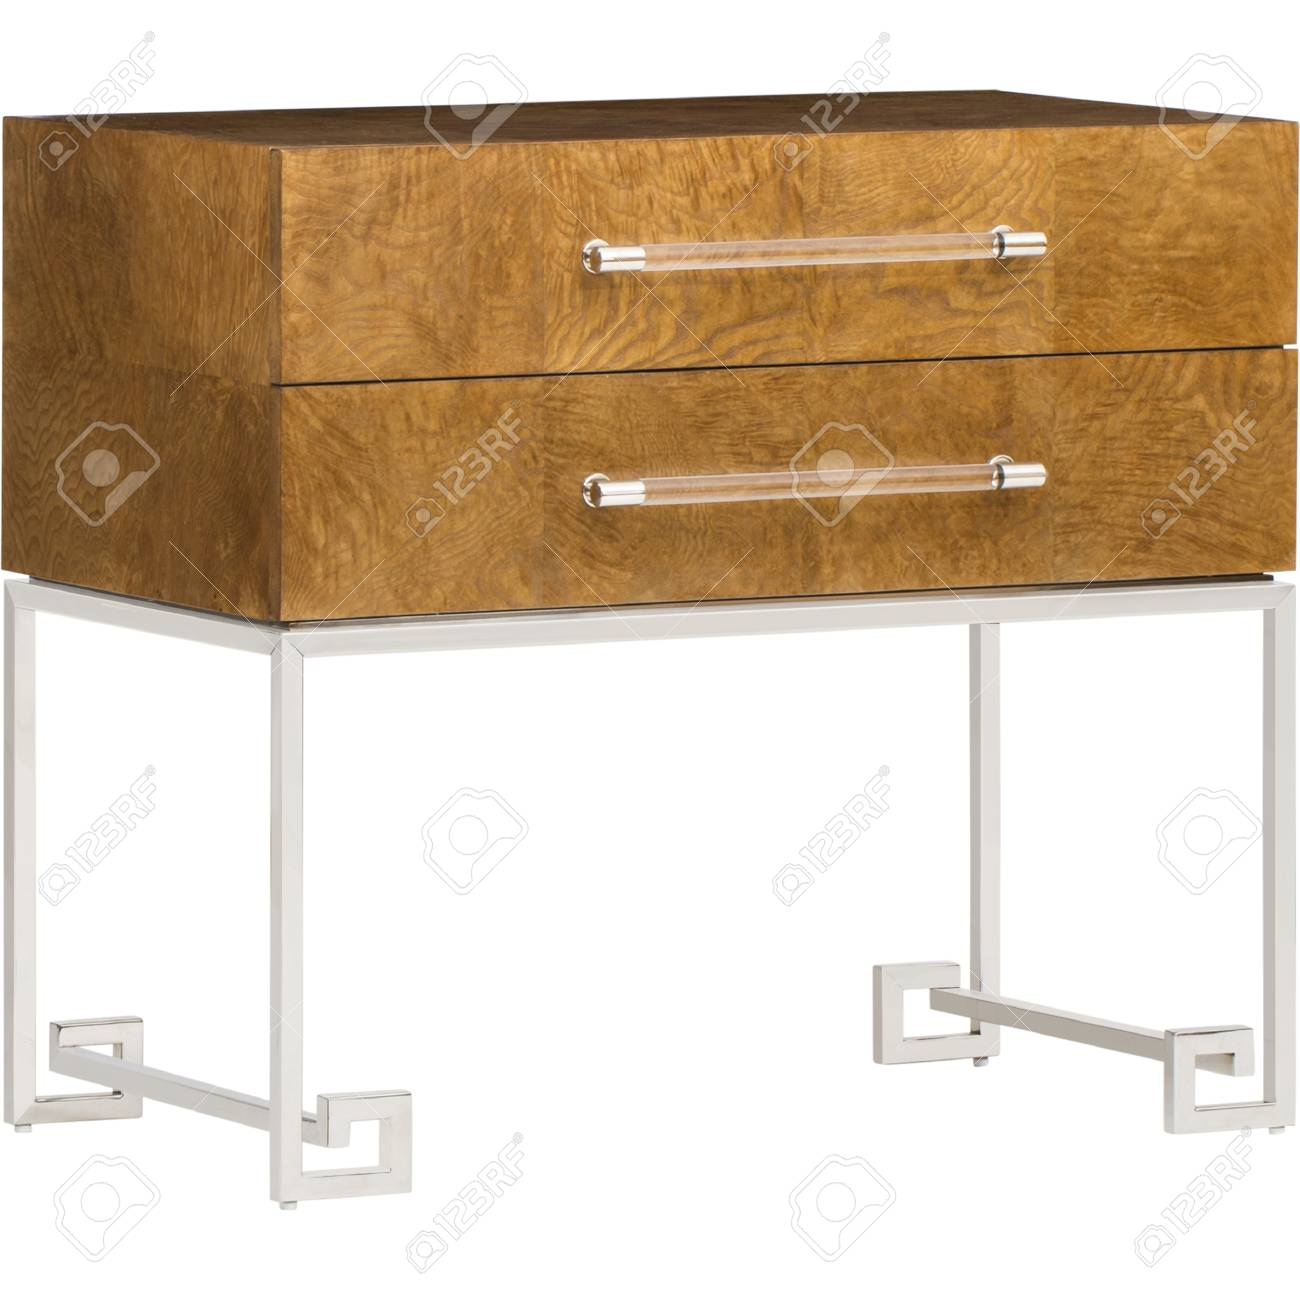 Picture of: Mid Century Bedside Table Stock Photo Picture And Royalty Free Image Image 98806913